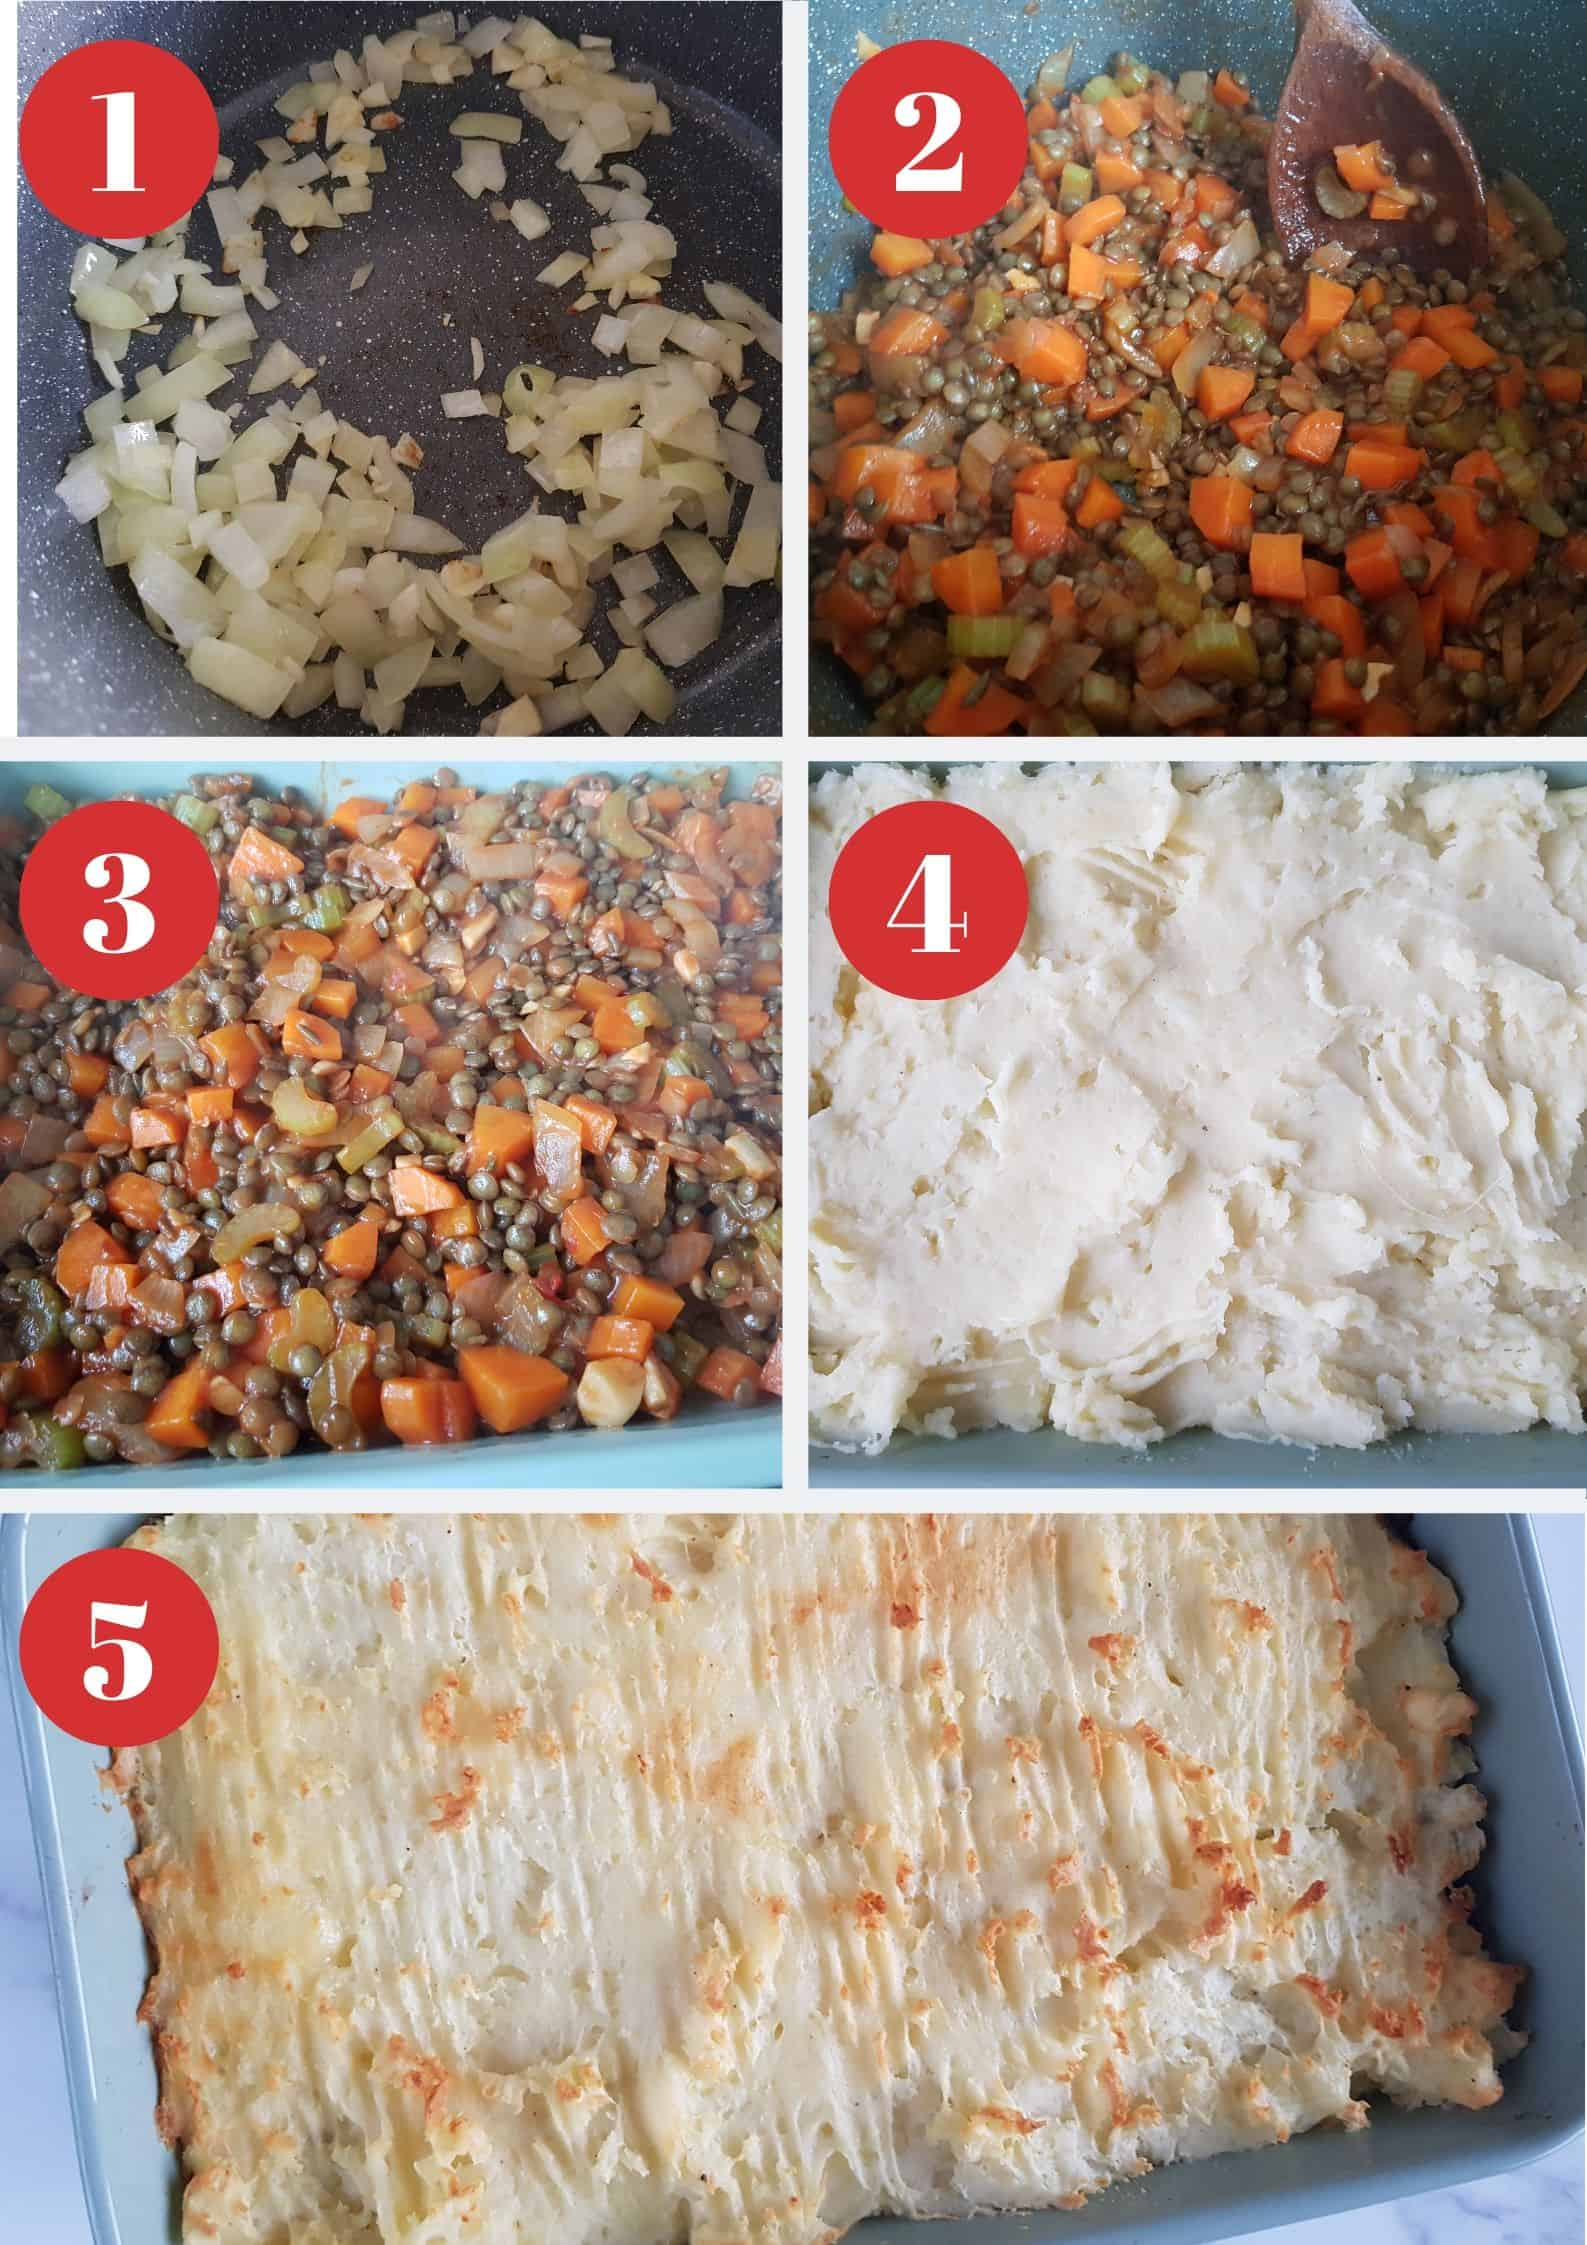 Infographic showing How to make cottage pie with lentils.